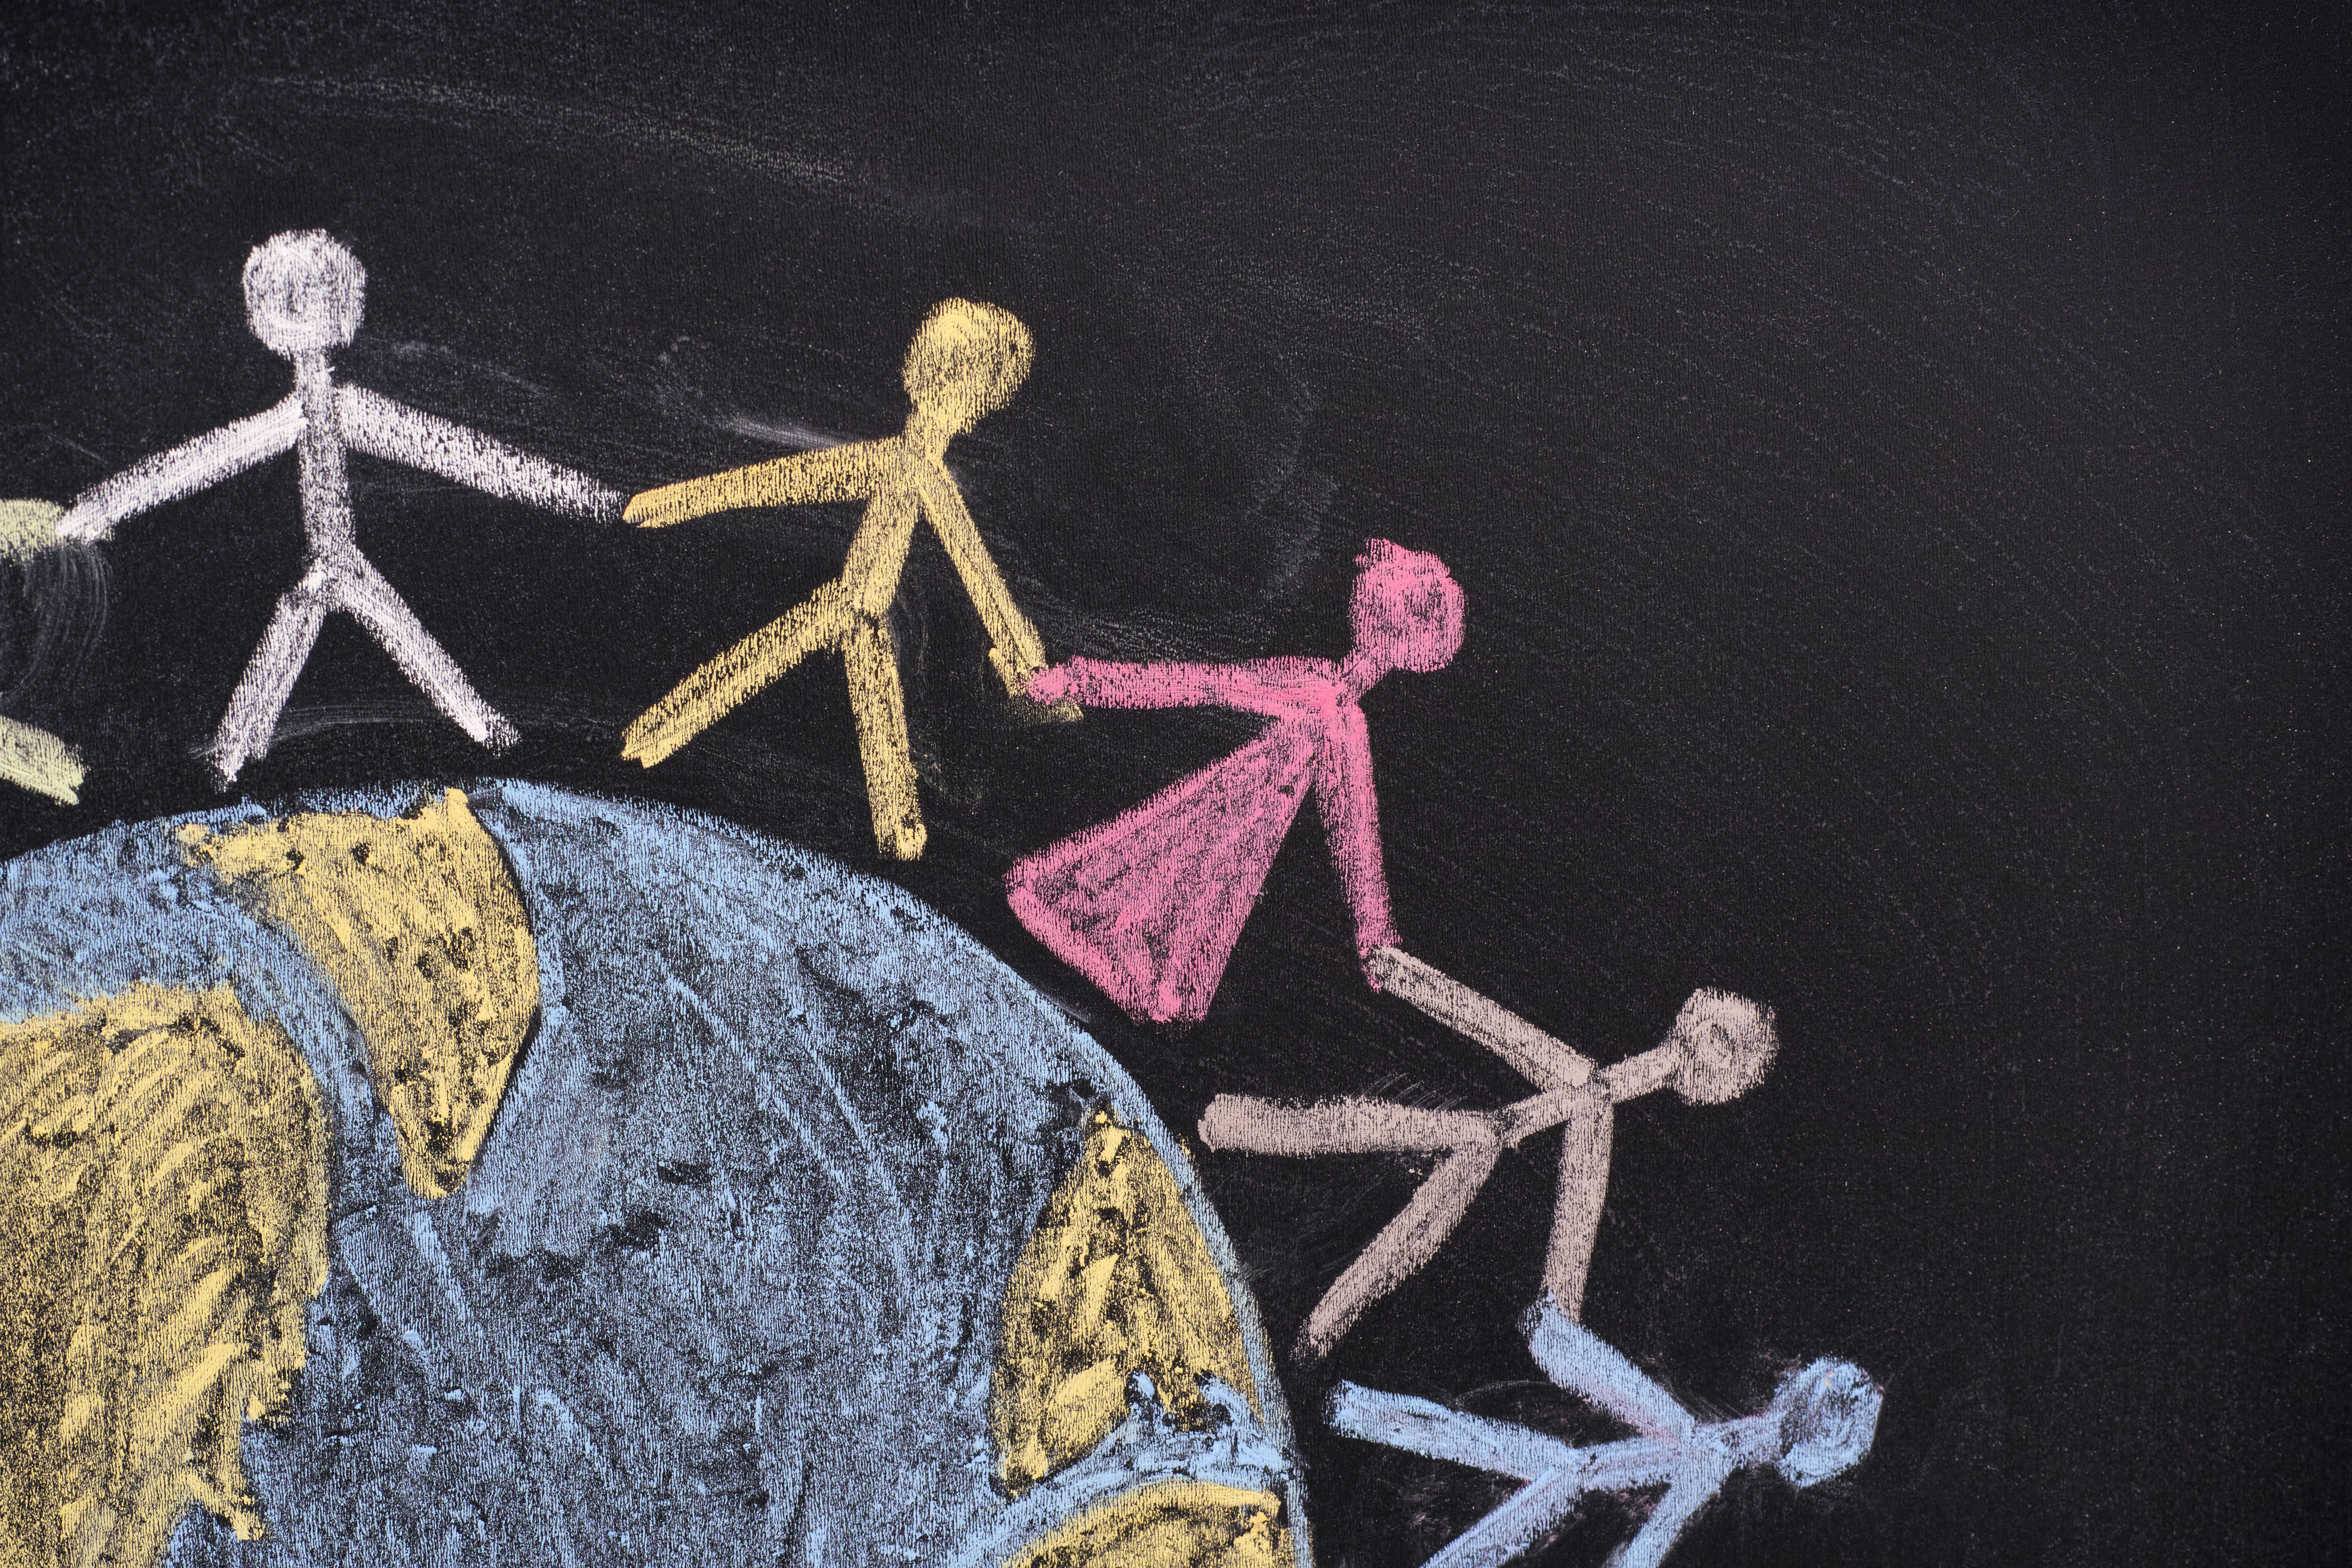 Chalk picture of a world with stick figures holding hands around it